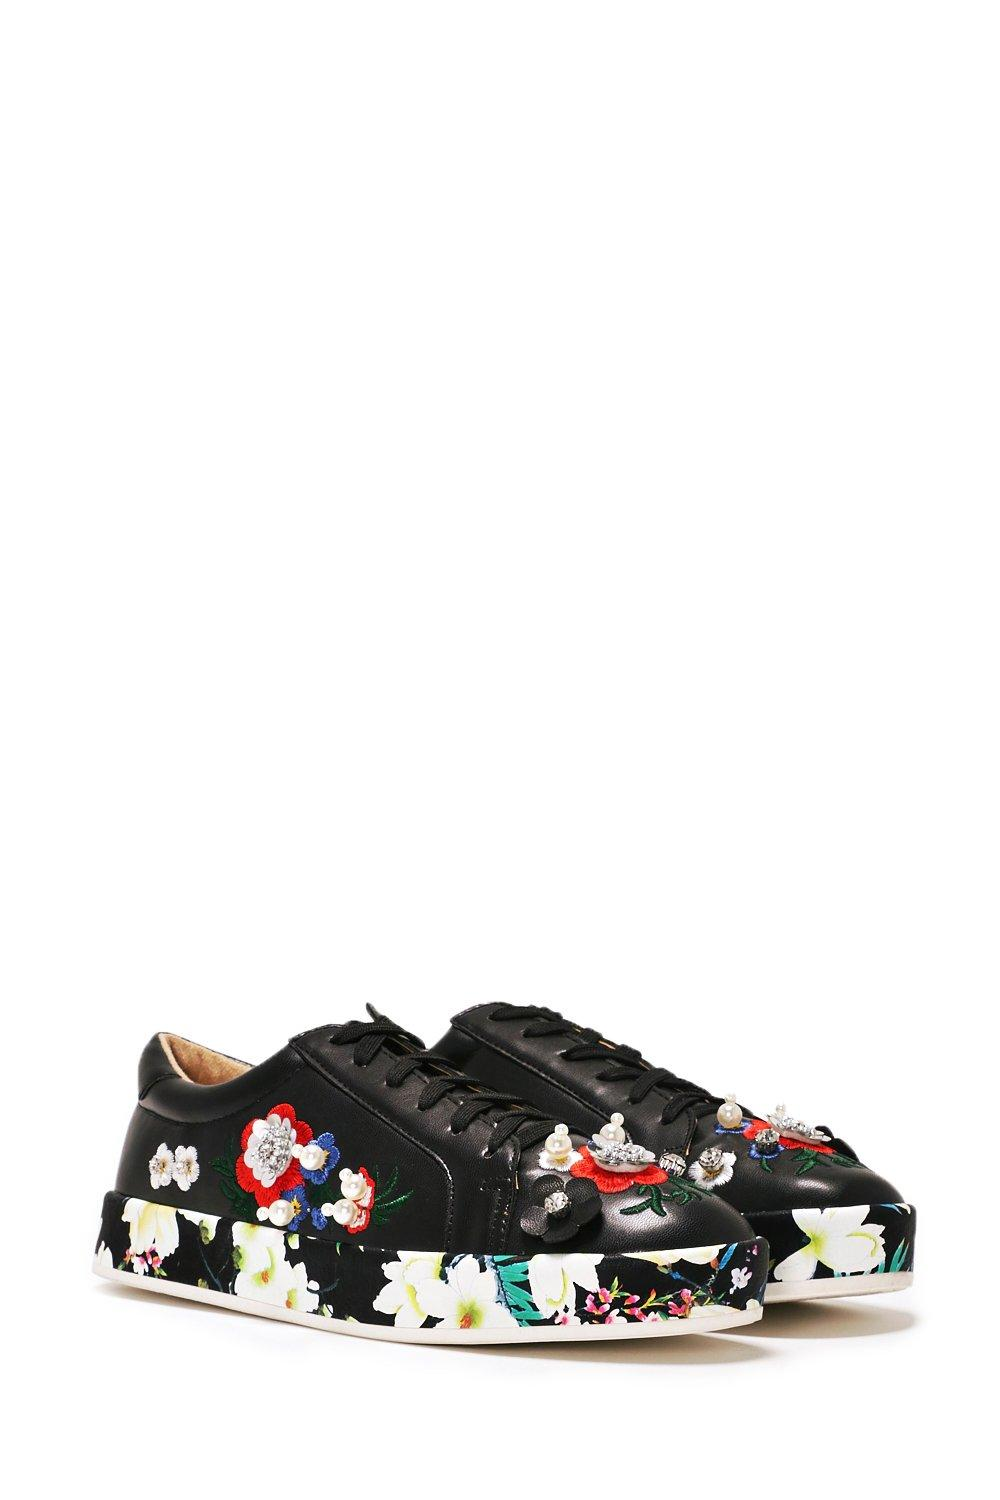 249ac0d23b3 She Said Bloom Embellished Sneaker